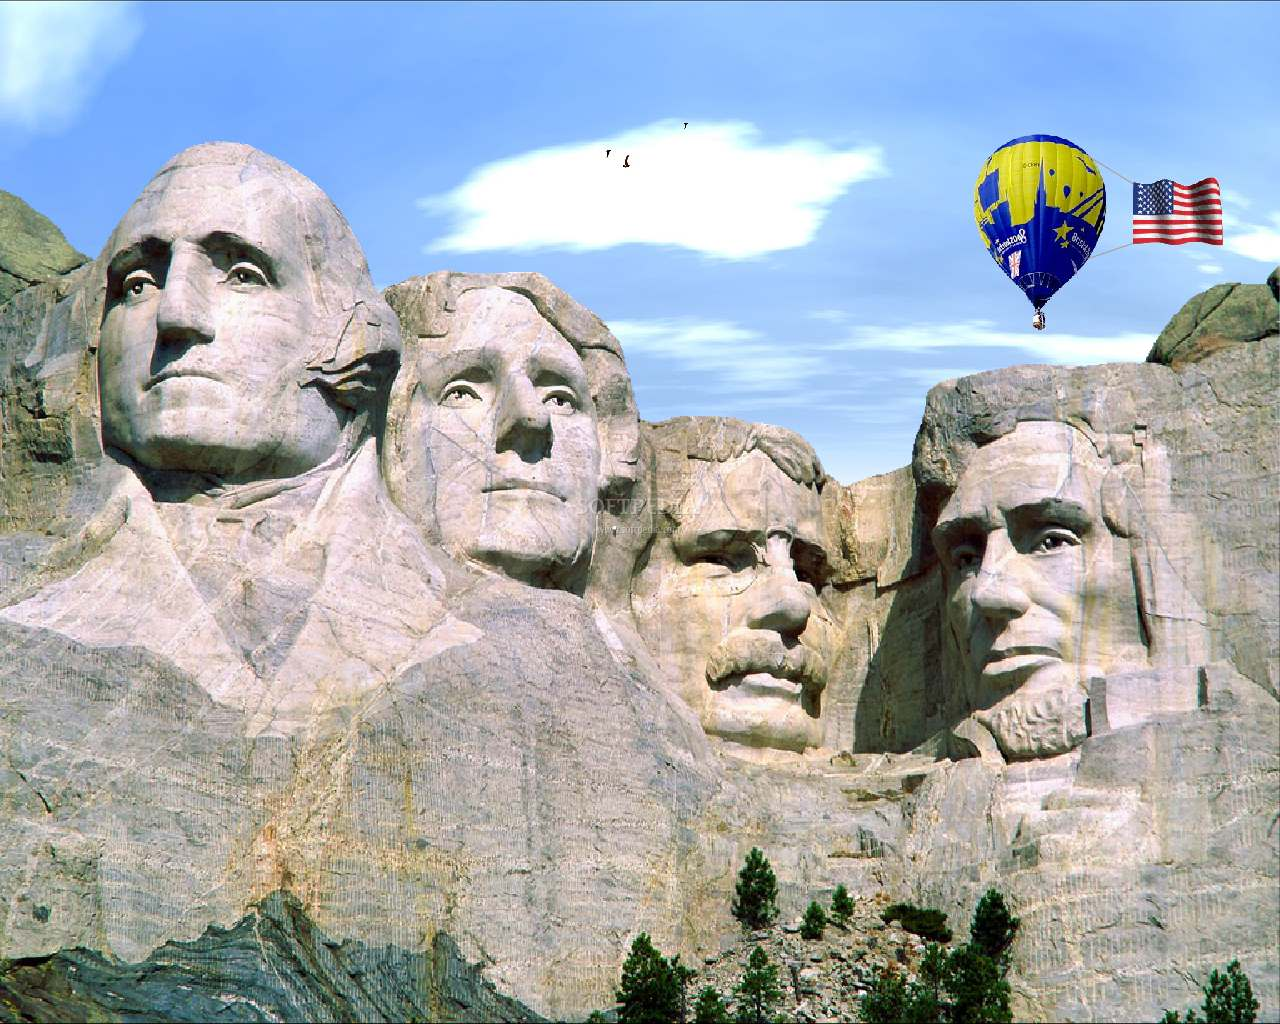 http://3.bp.blogspot.com/-JKbdJP7rdYs/TaBfqwEtXFI/AAAAAAAAABo/QFqJHd8IMi0/s1600/The-Mount-Rushmore-Animated-Wallpaper_1.jpg